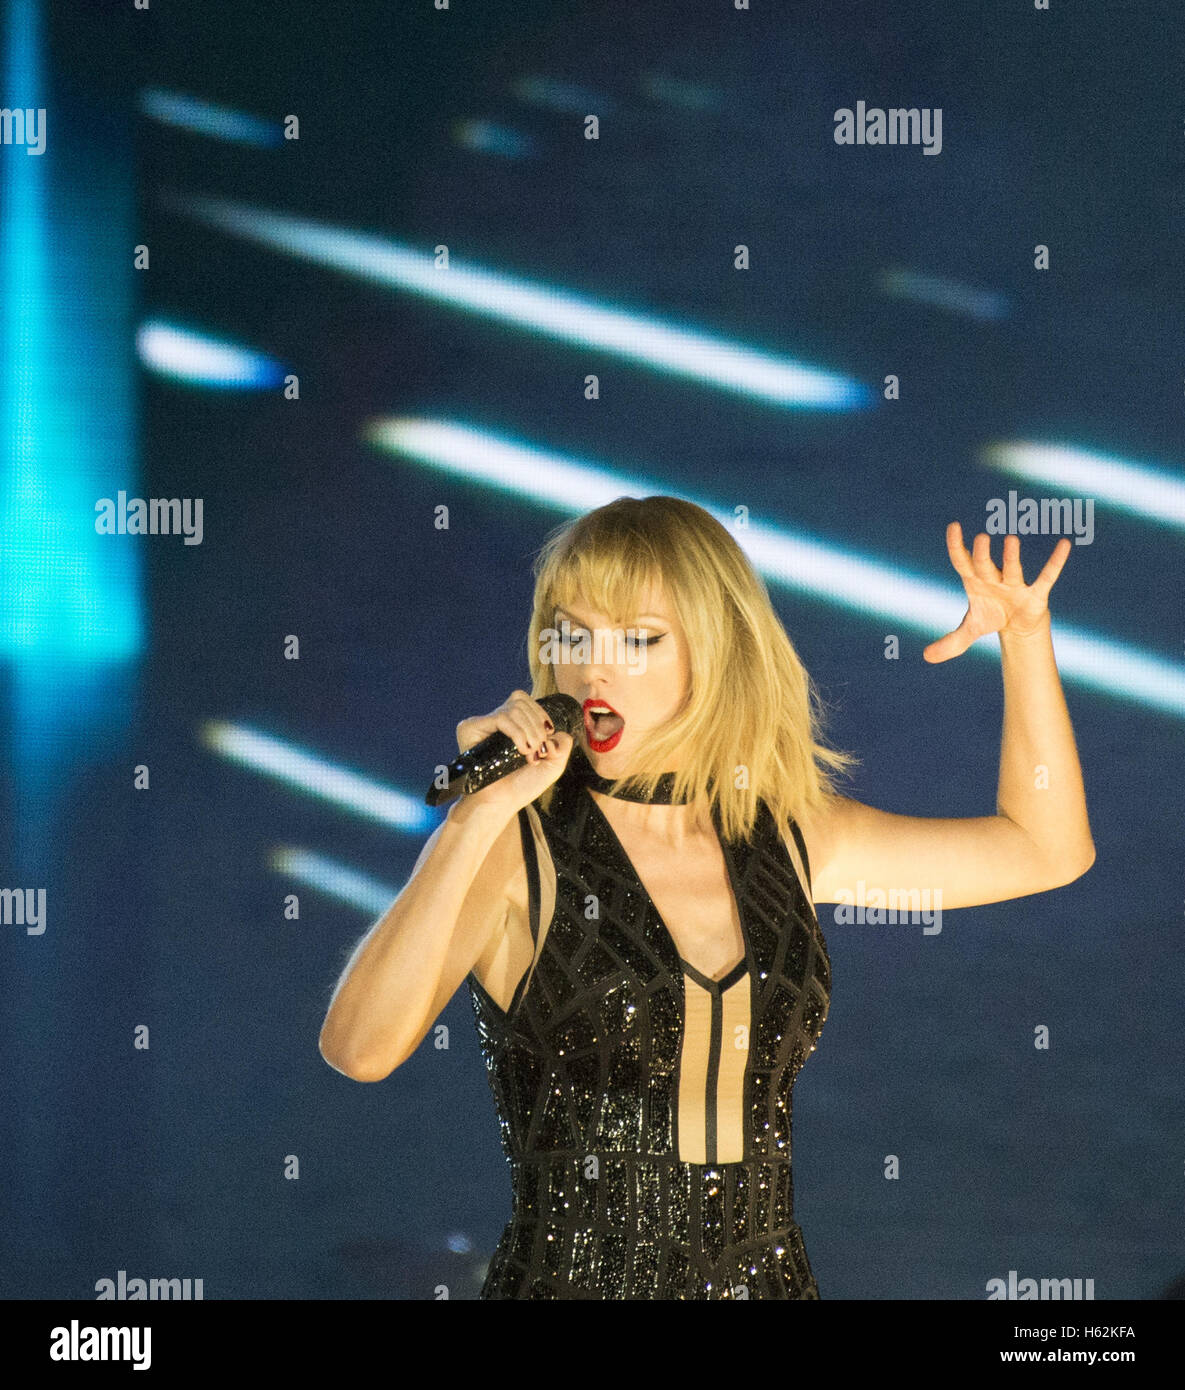 Austin Texas Usa 22nd Oct 2016 Taylor Swift Performing In Front Stock Photo Alamy